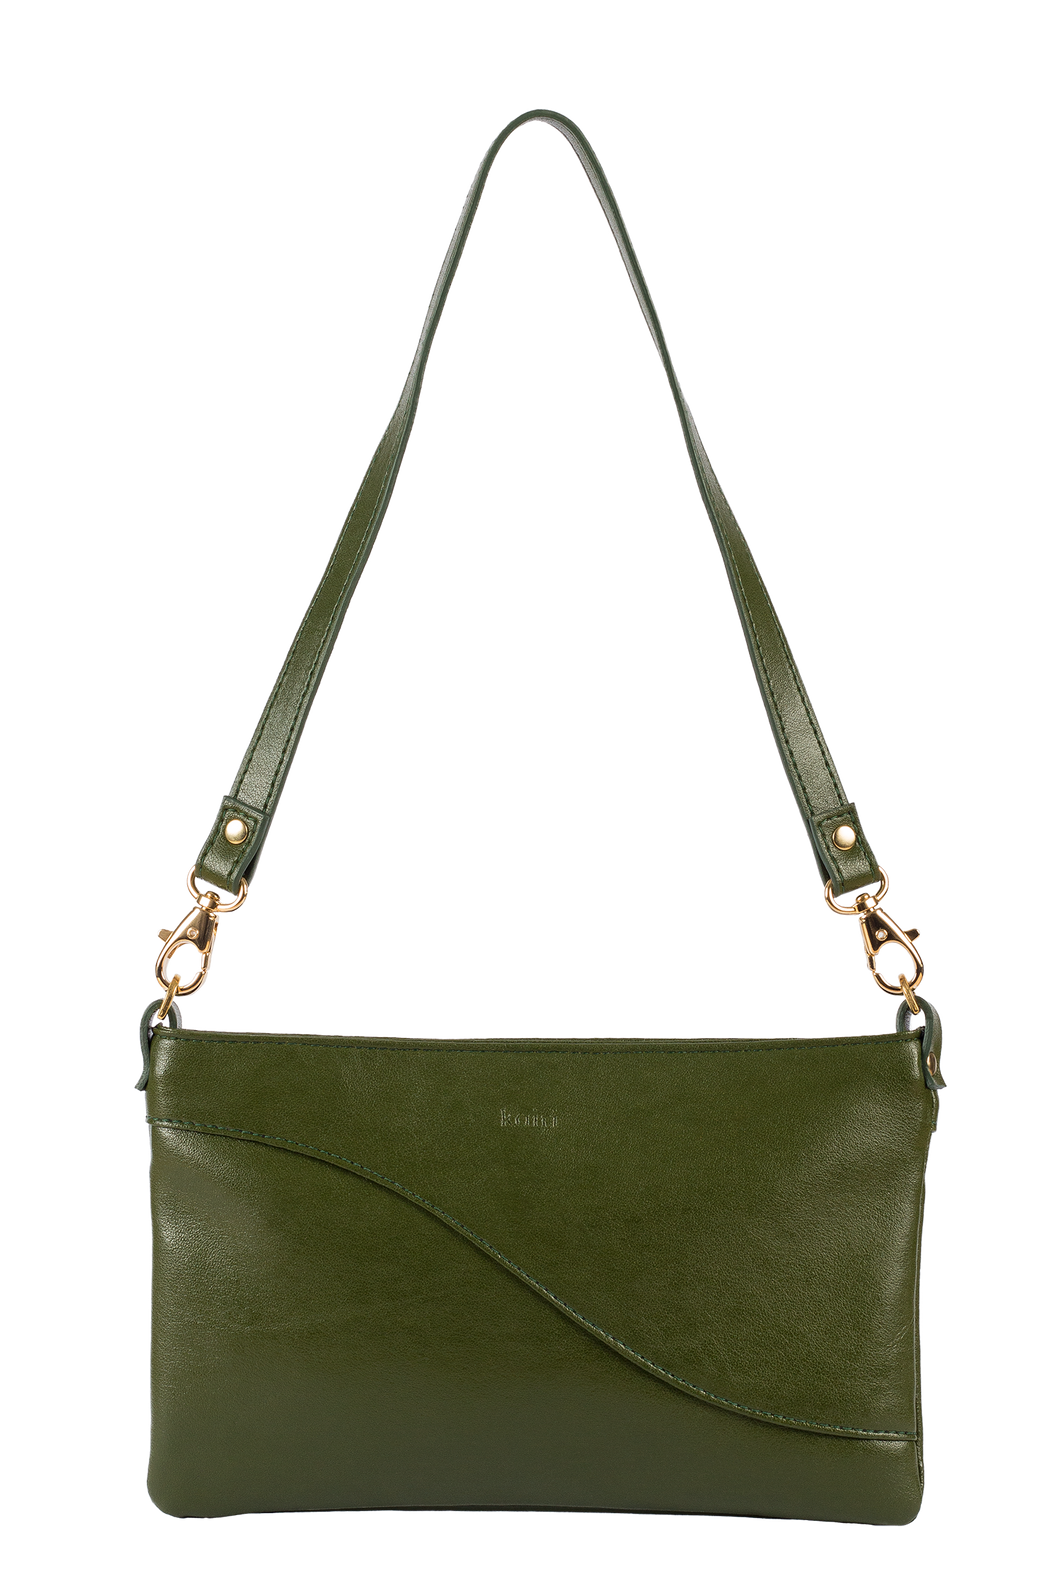 Kairi dark green cactus leather baguette bag